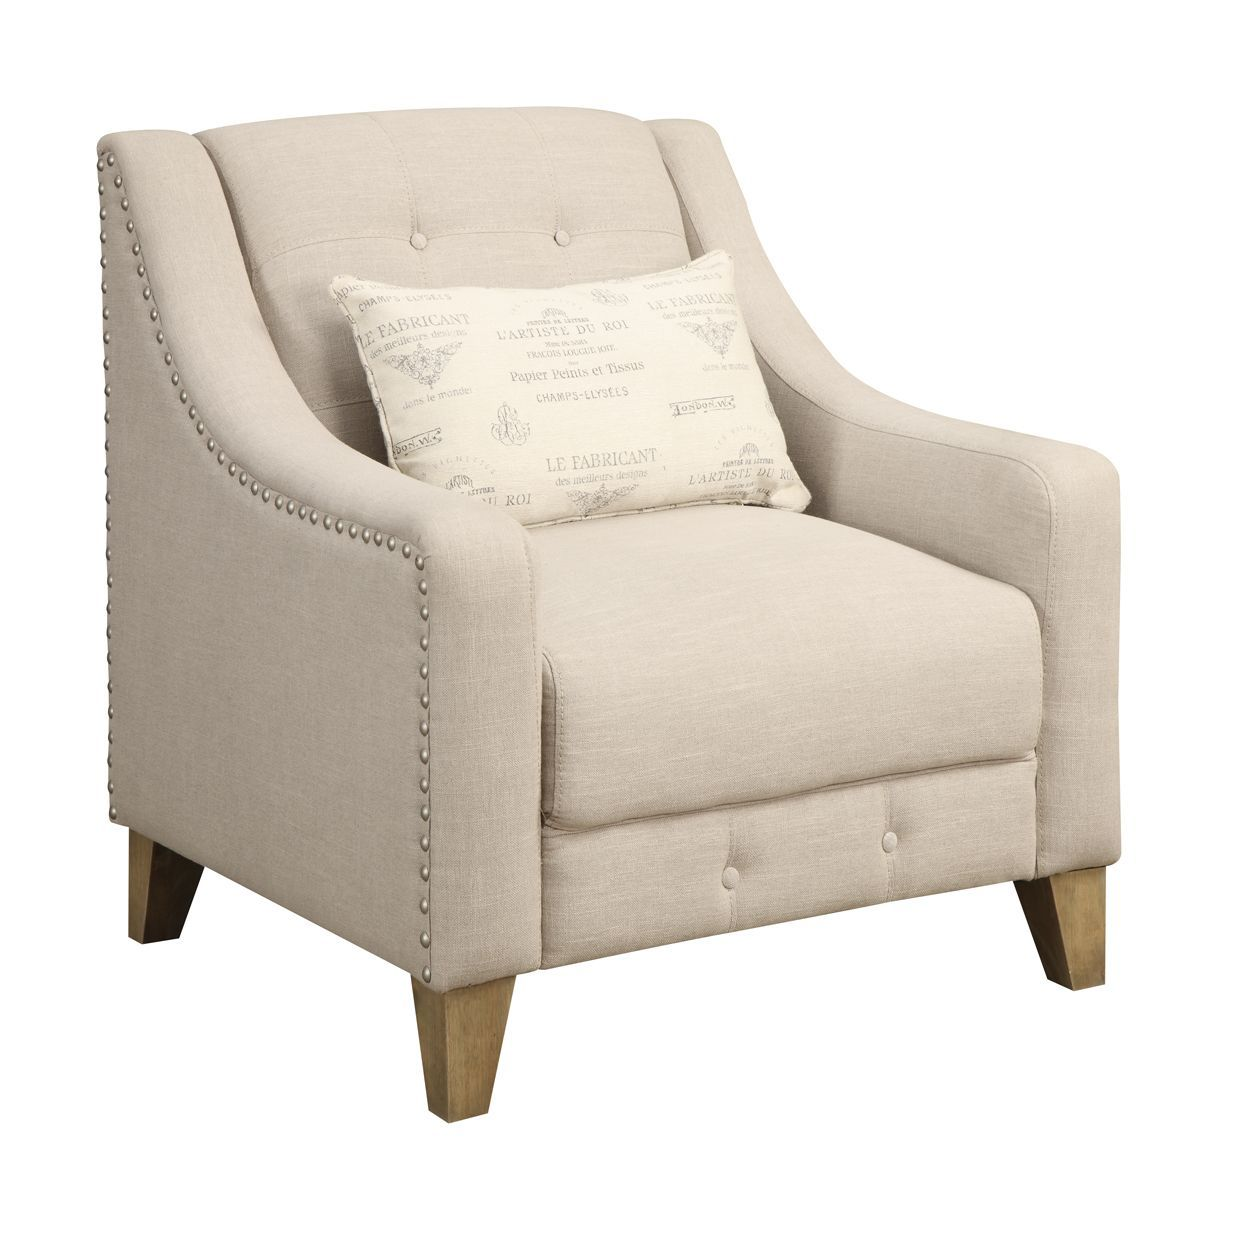 Add A Touch Of Sophistication To Your Home Decor With This Simple  # Muebles Georgina